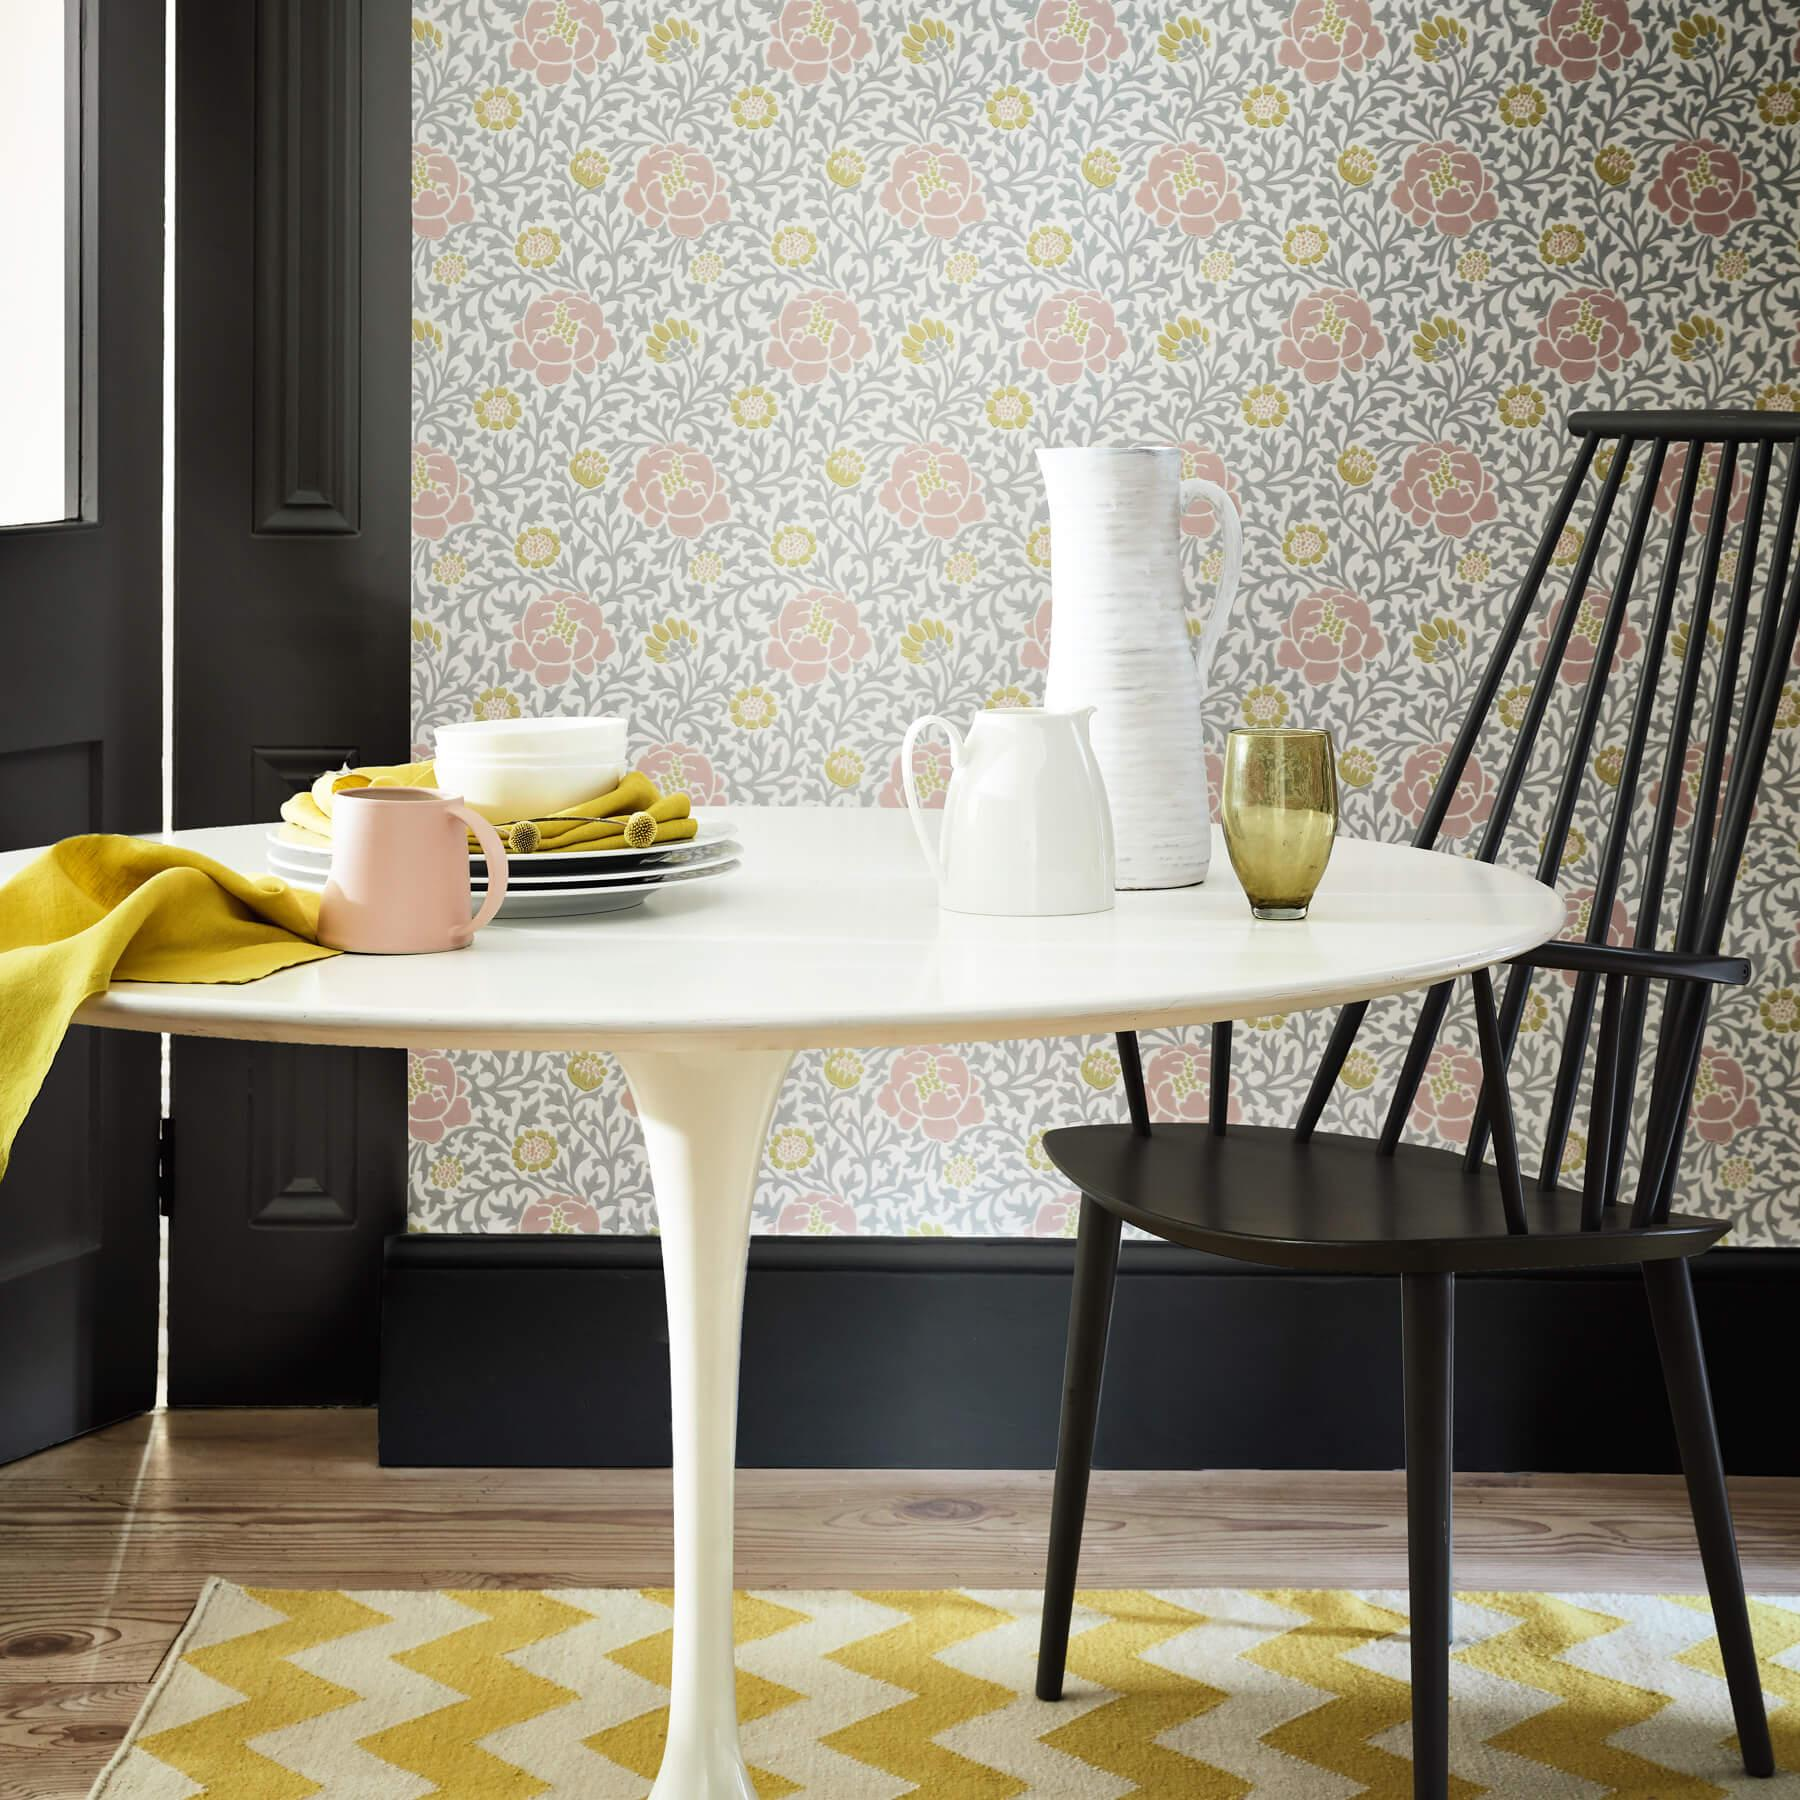 Papier peint Lansdowne Walk Nordic - Collection London Wallpapers V de Little Greene AMB